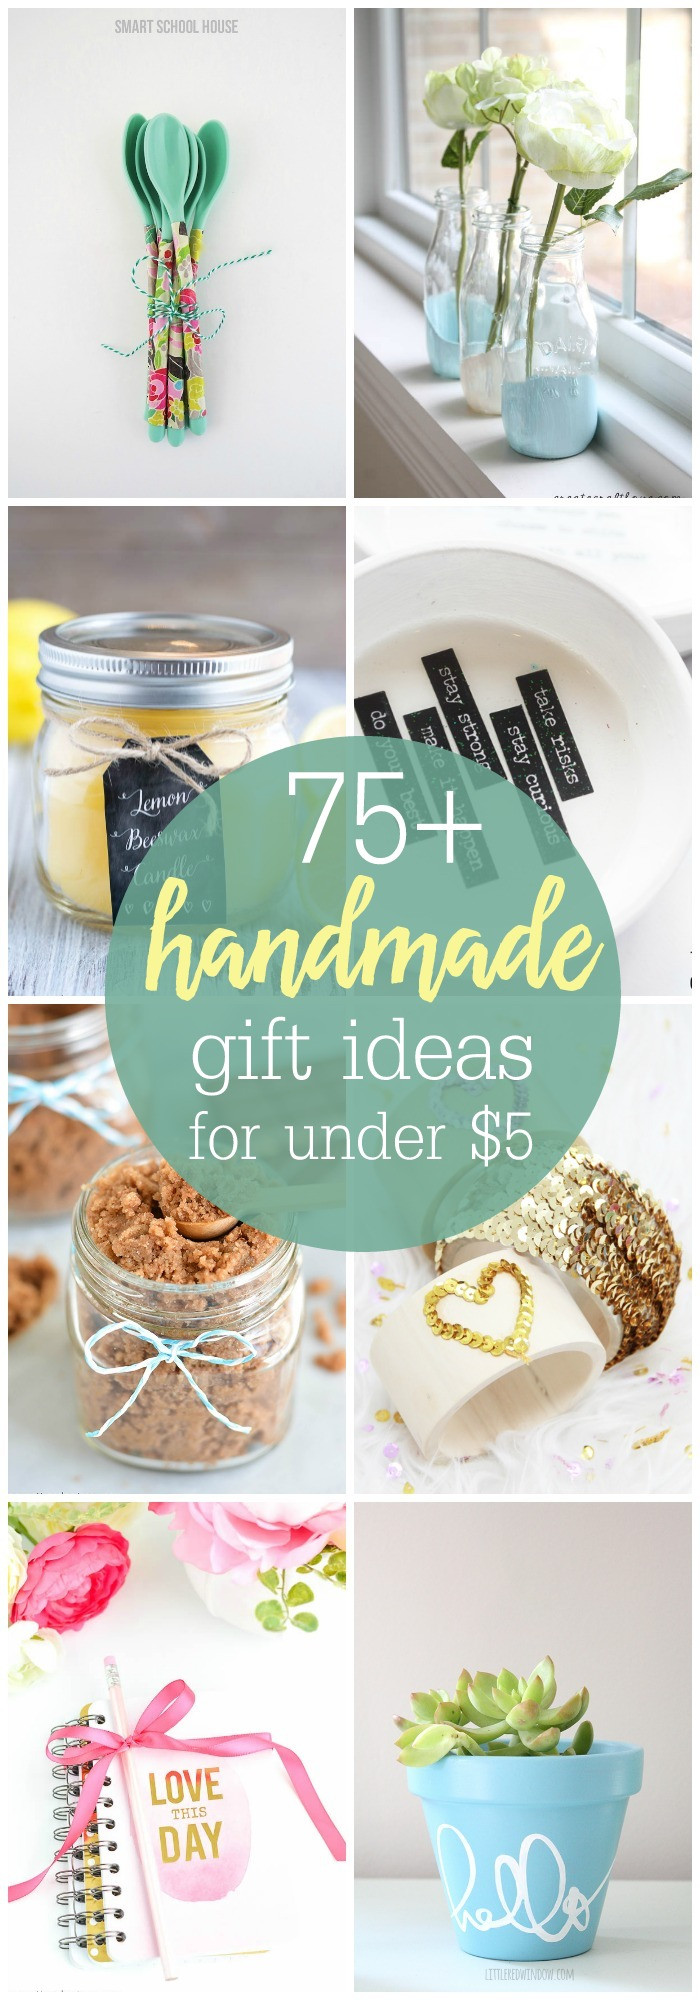 Best ideas about Unique DIY Gifts . Save or Pin DIY Gifts under $5 Now.